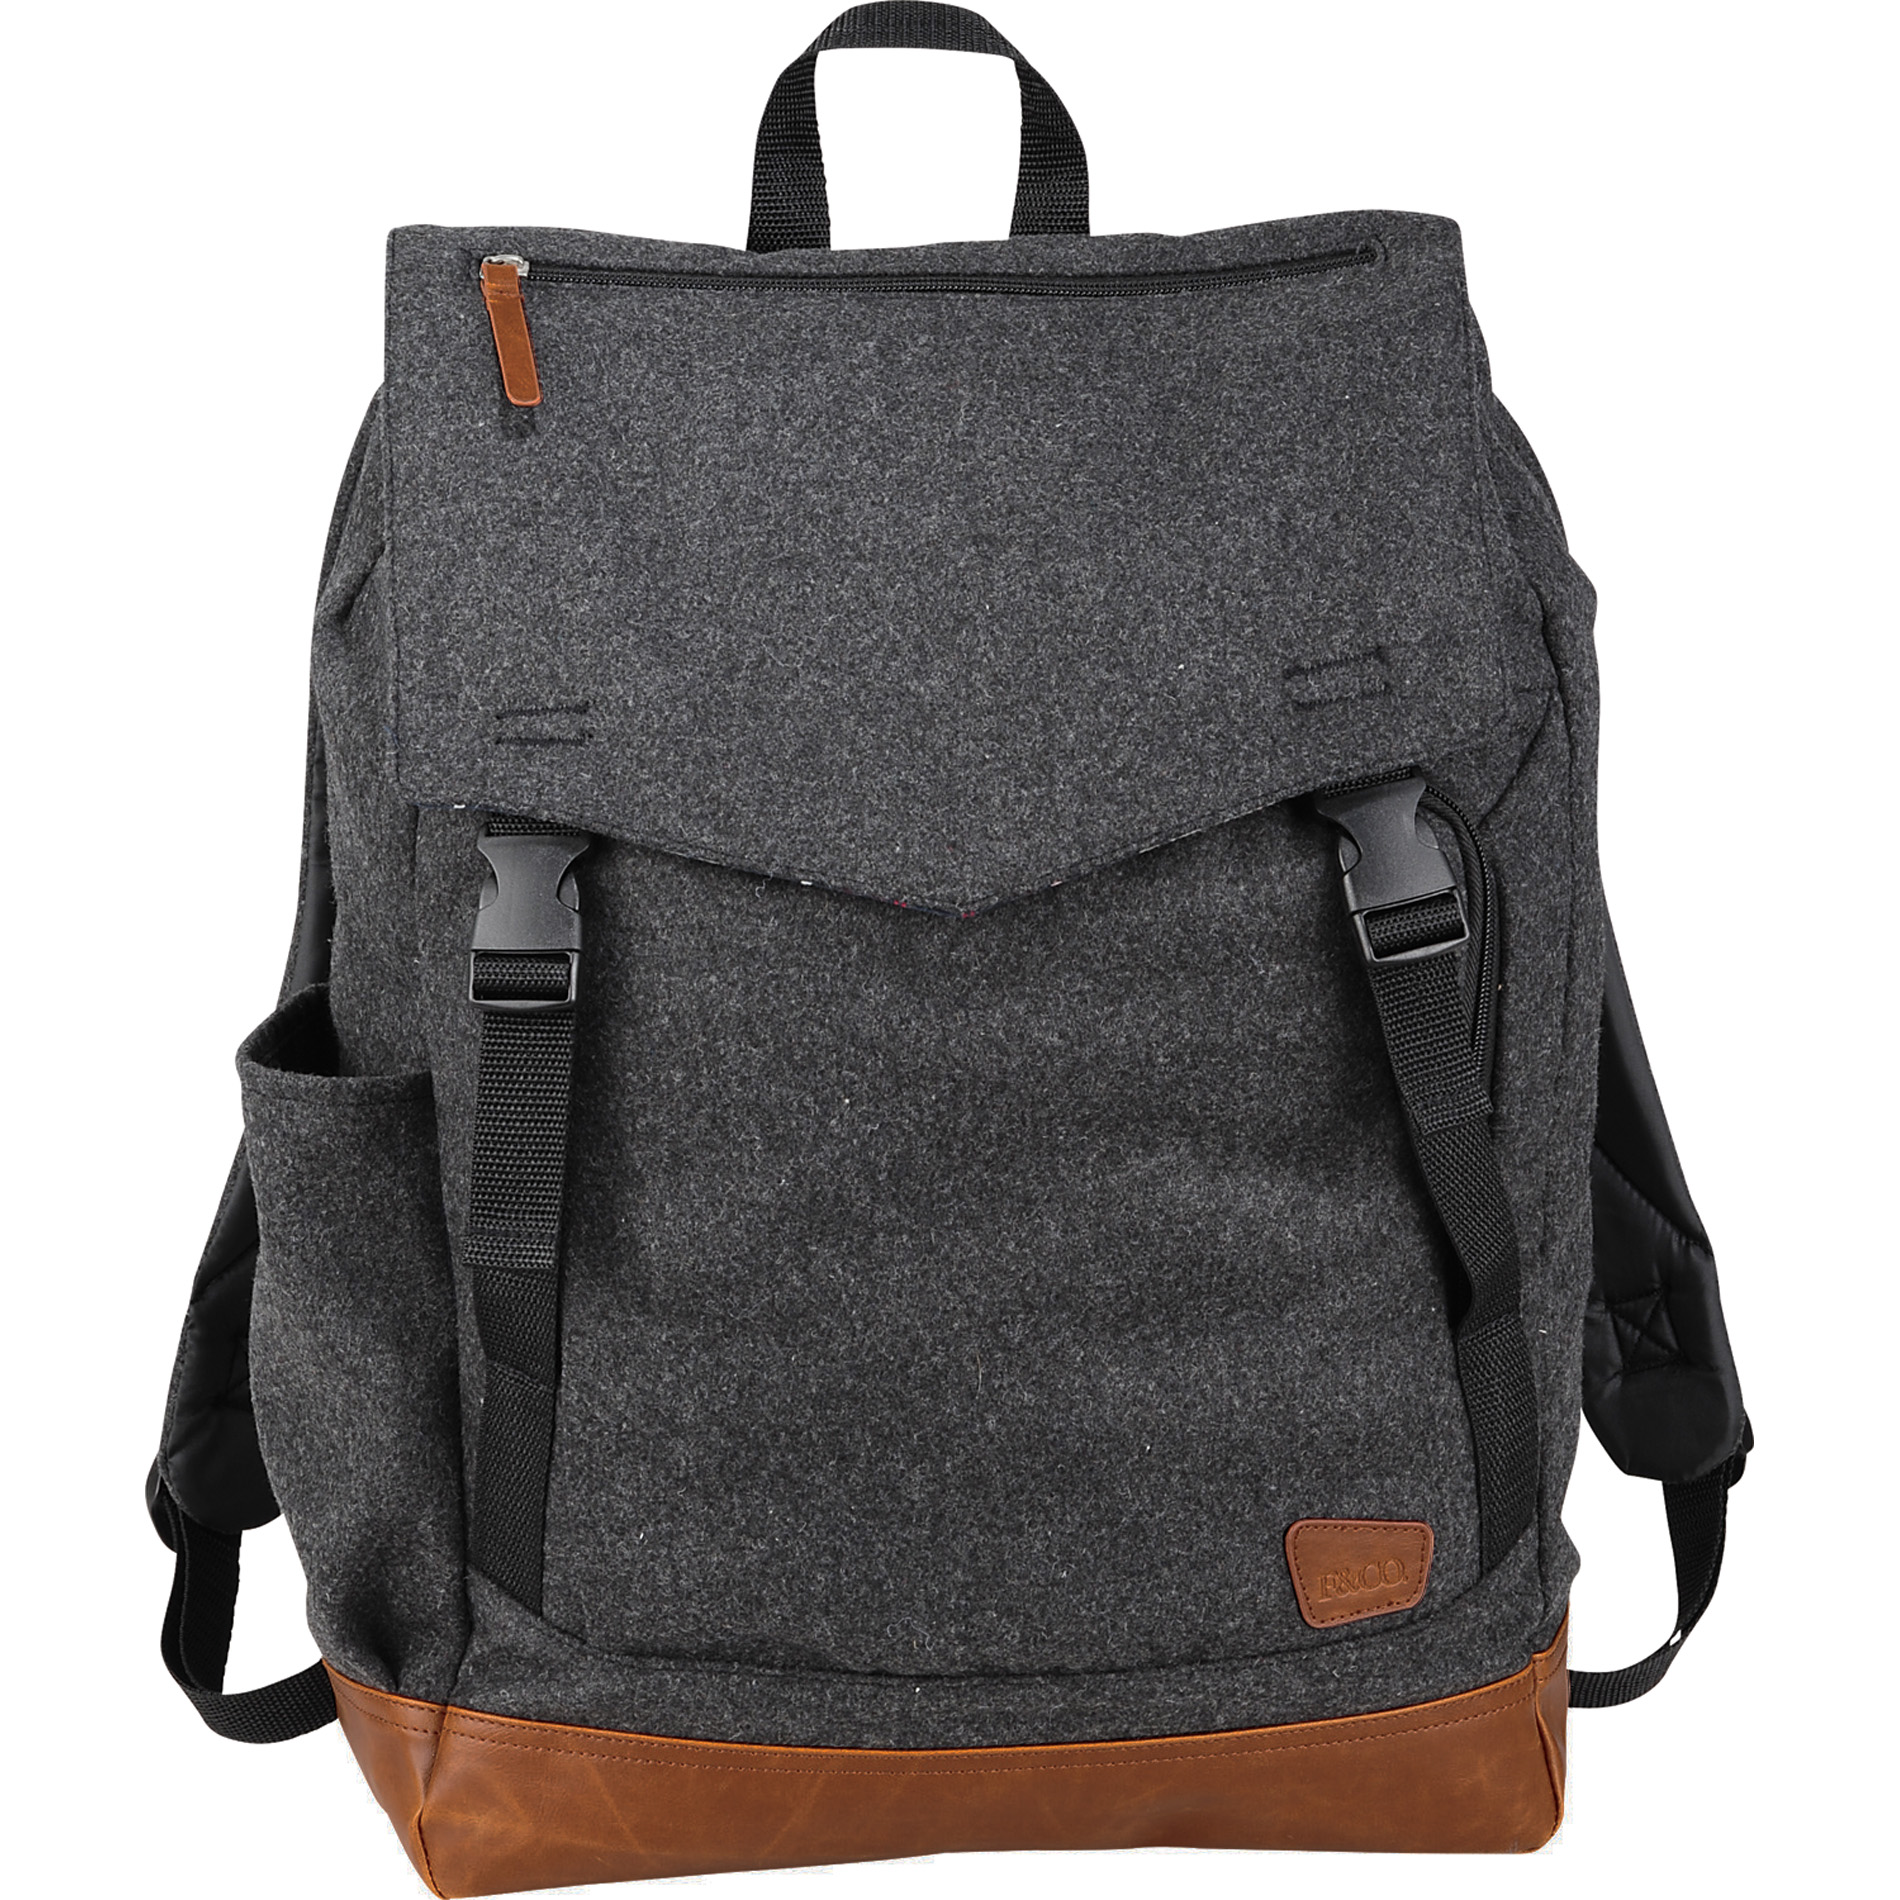 "Field & Co. 7950-72 - Campster Wool 15"" Rucksack Backpack"